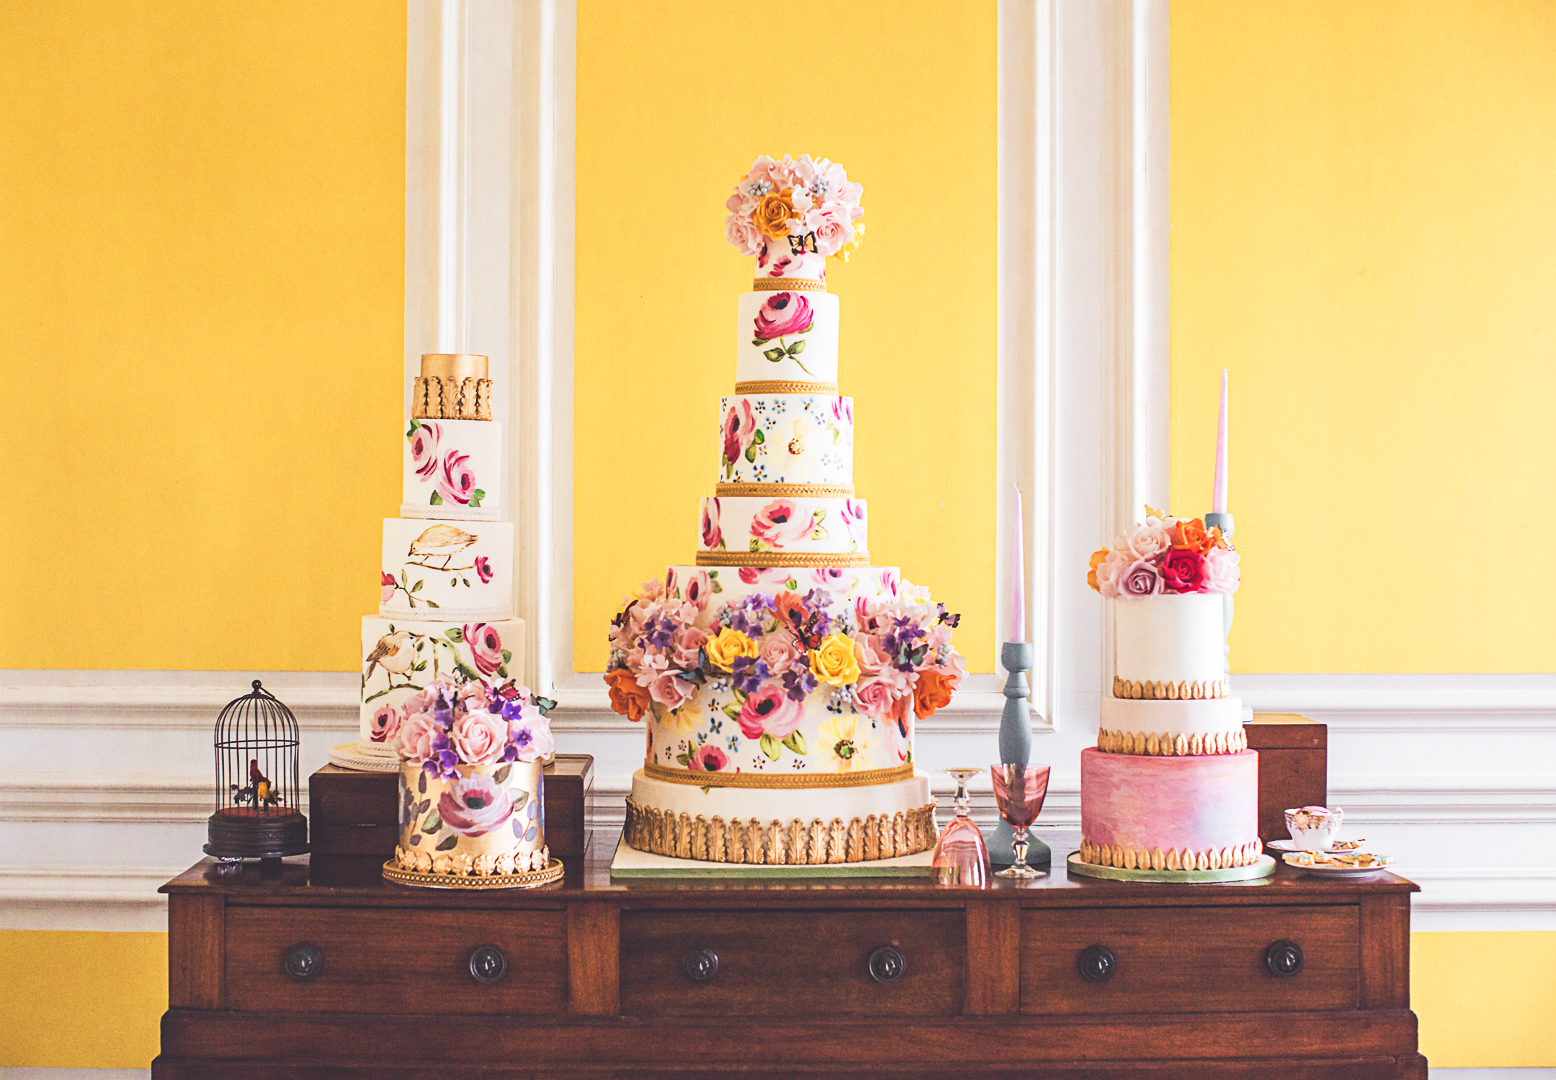 Charlotte Munro's list of Whimsical Wedding Cakes. Elizabeths Cake Emporium, shot by Photography by Anna Marie at Poundon House